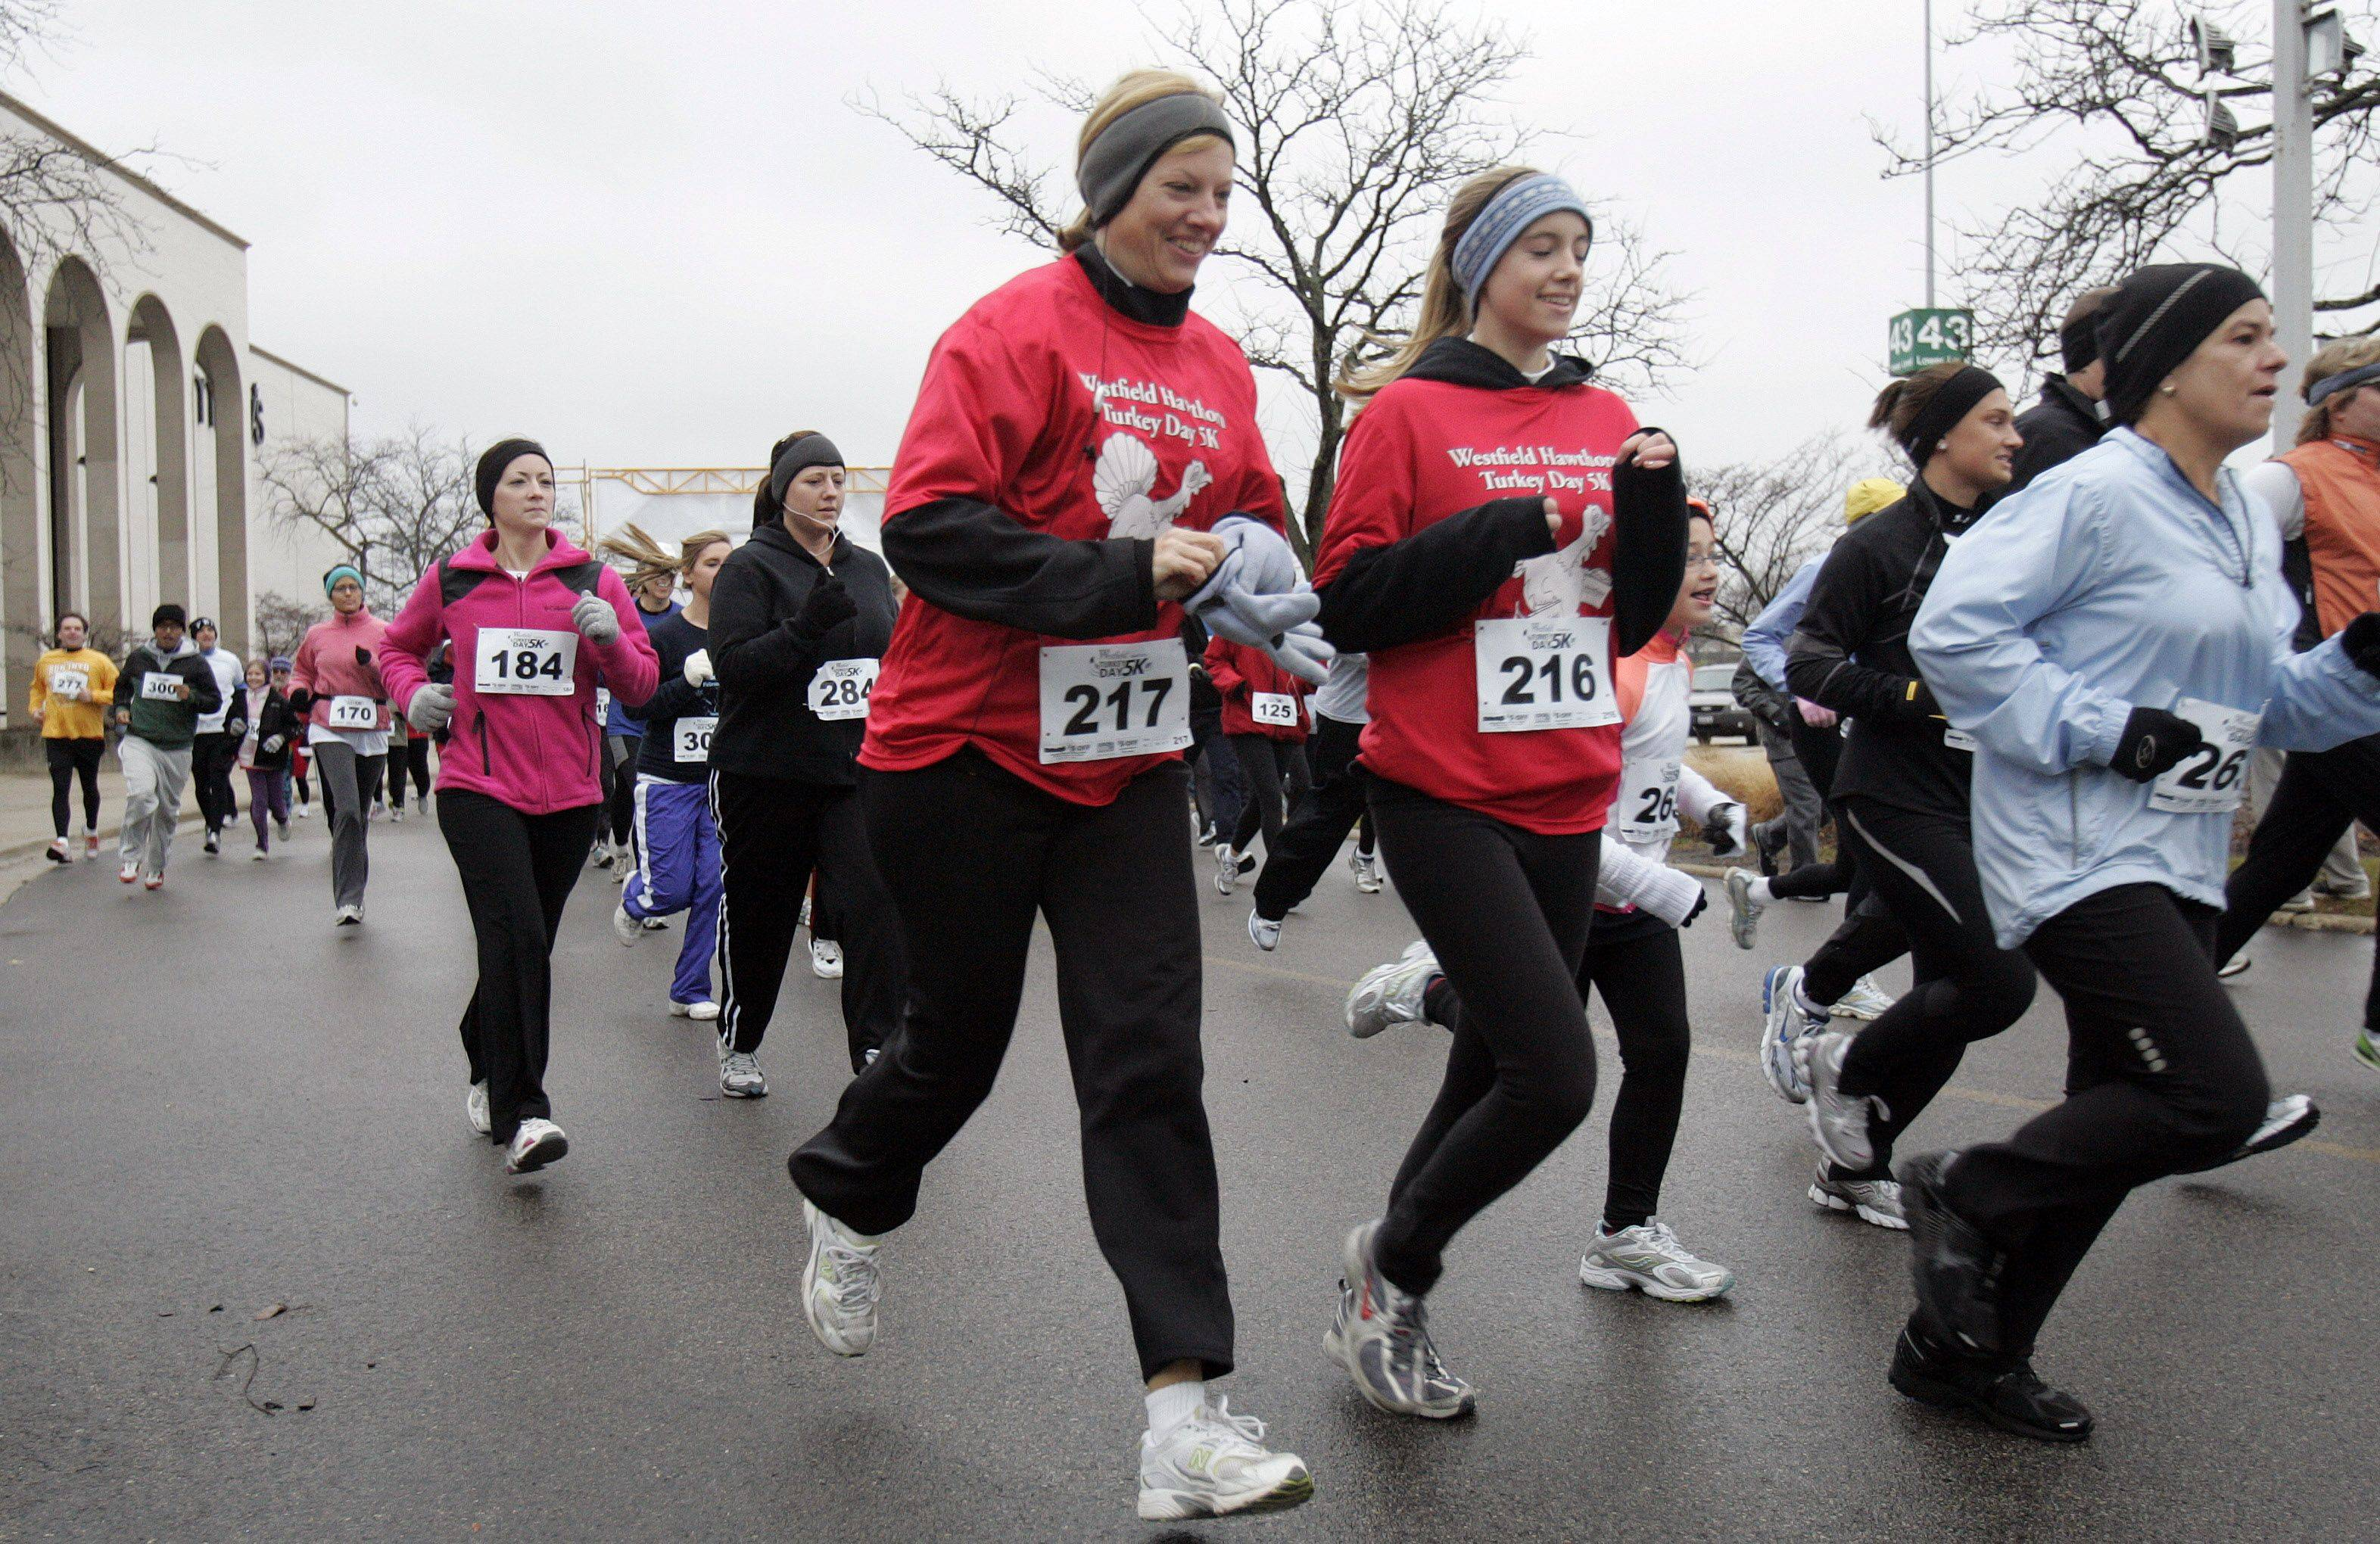 People participate in the Second Annual Westfield Hawthorn Turkey Day 5k run at Wesfield Hawthorn Mall in Vernon Hills Thursday morning.